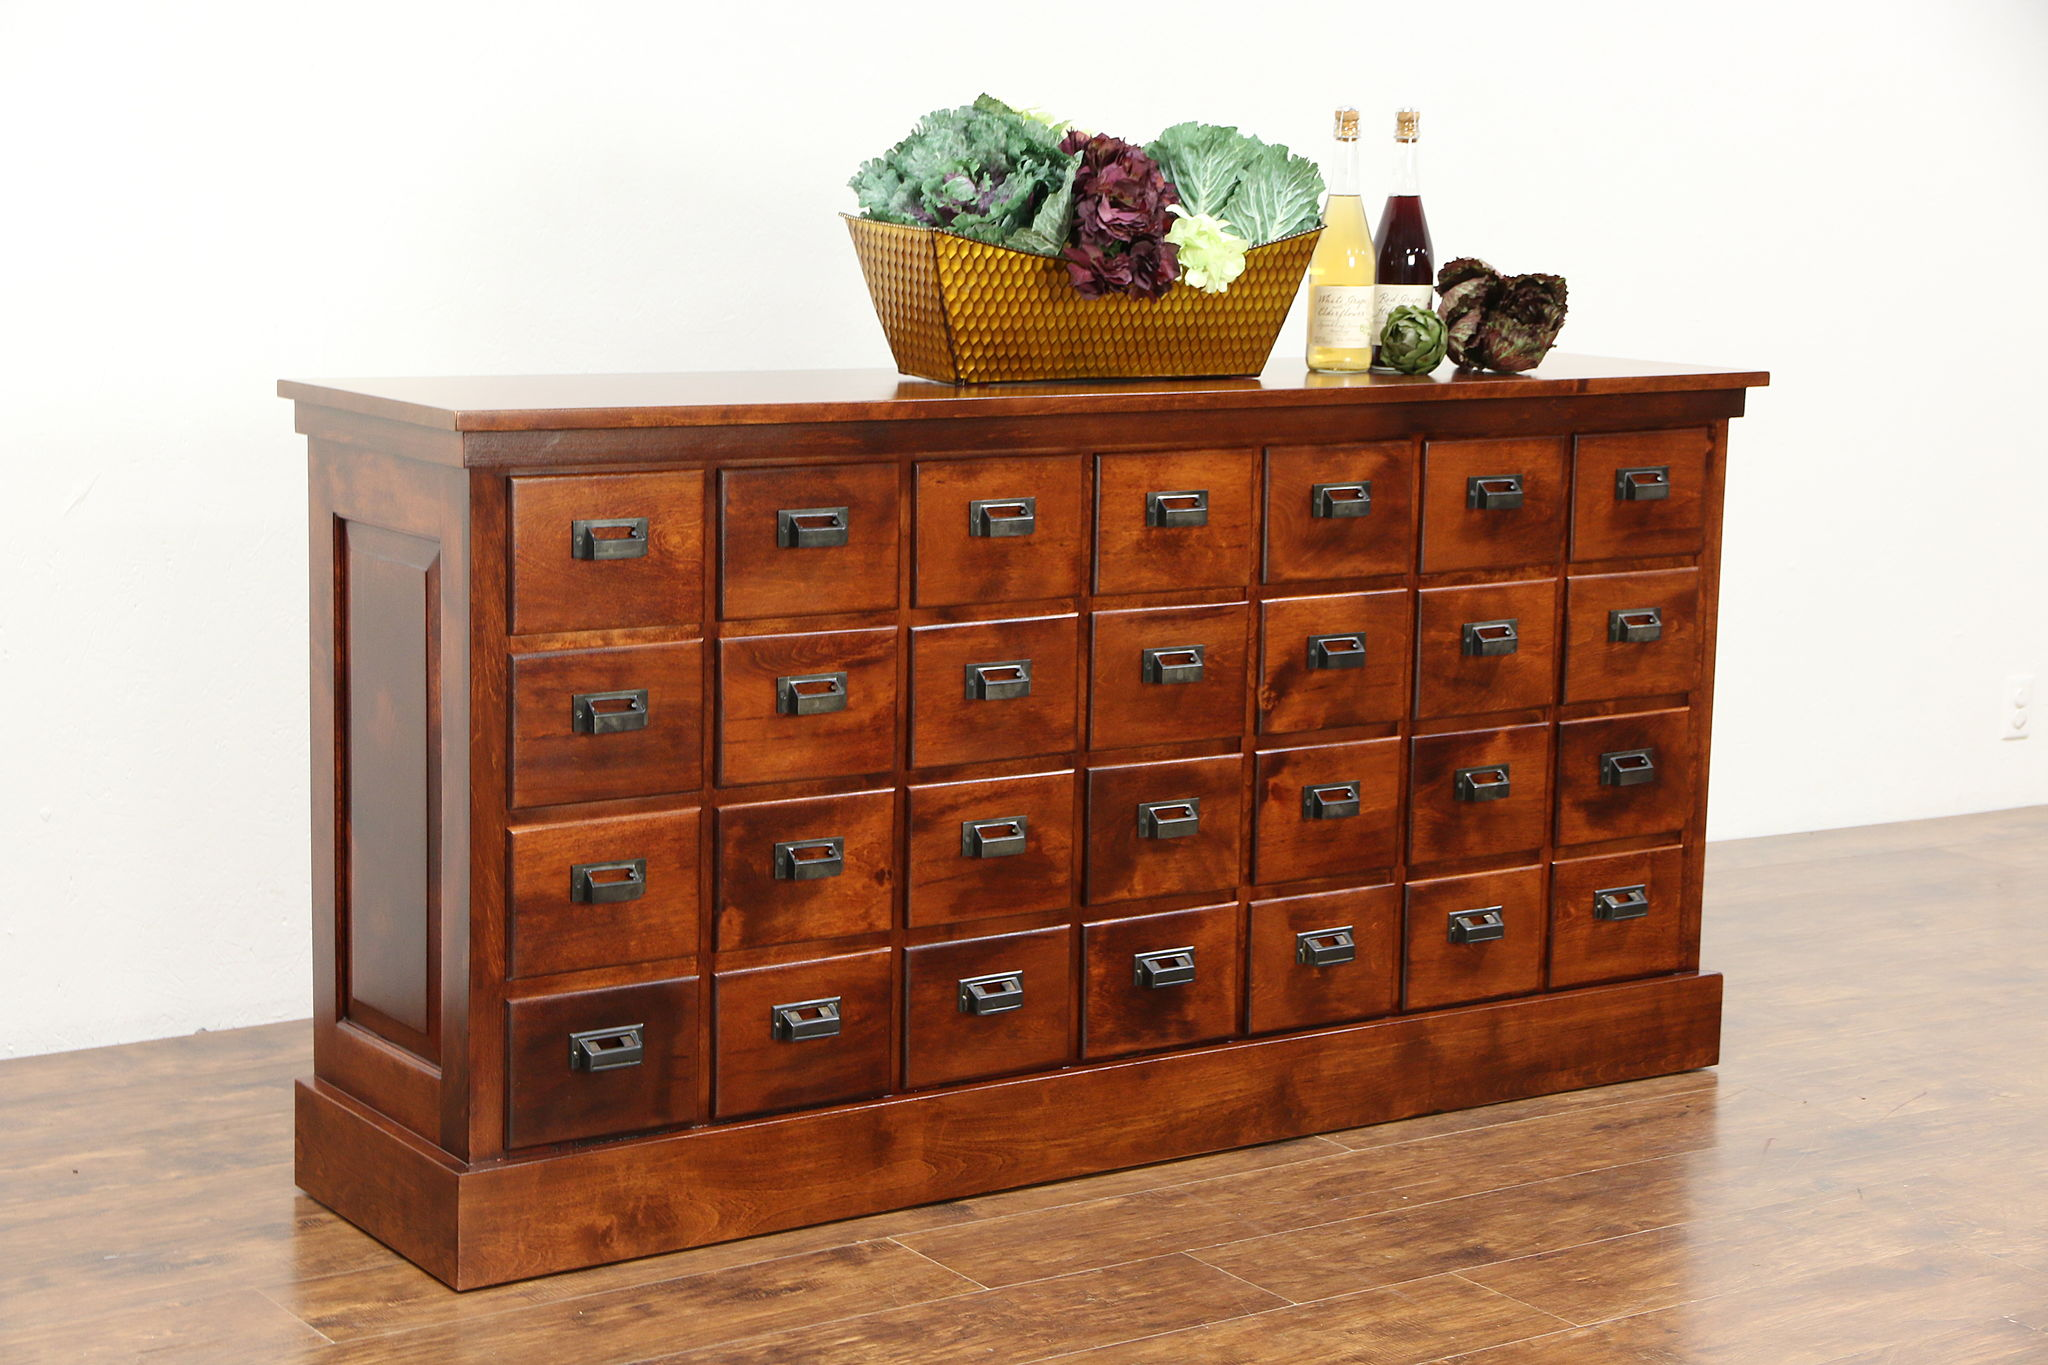 Files, Collector Cabinets - Harp Gallery Antique Furniture